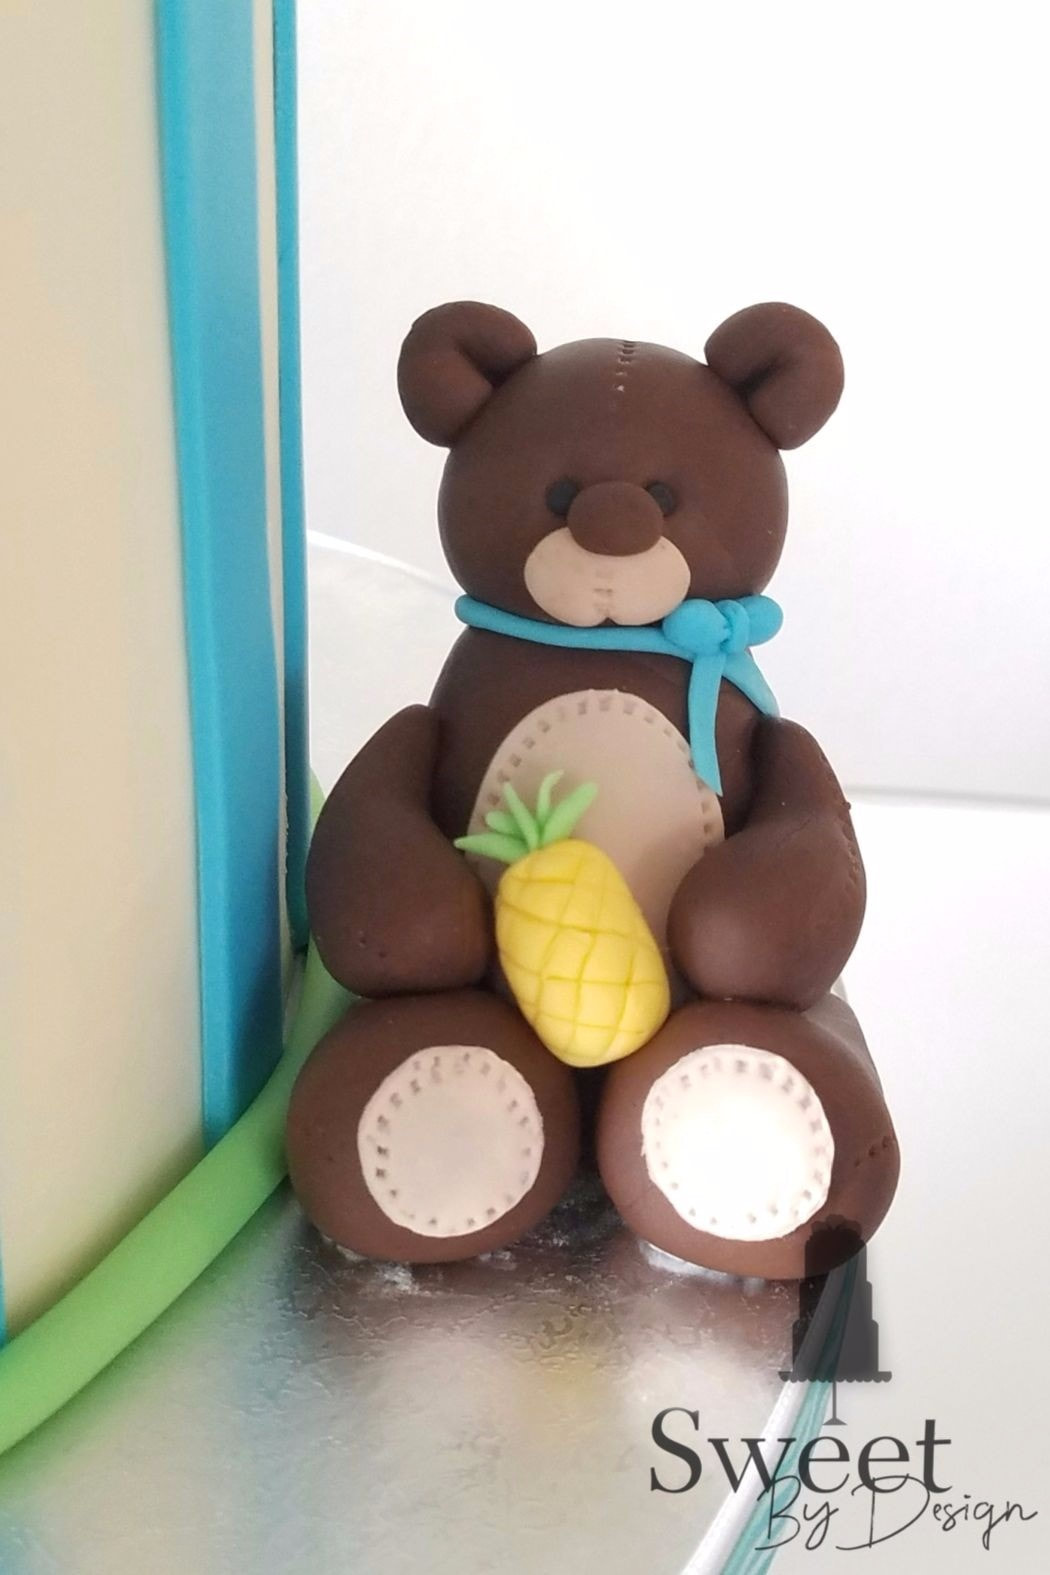 Fondant teddy bear by Sweet By Design in Melissa, TX